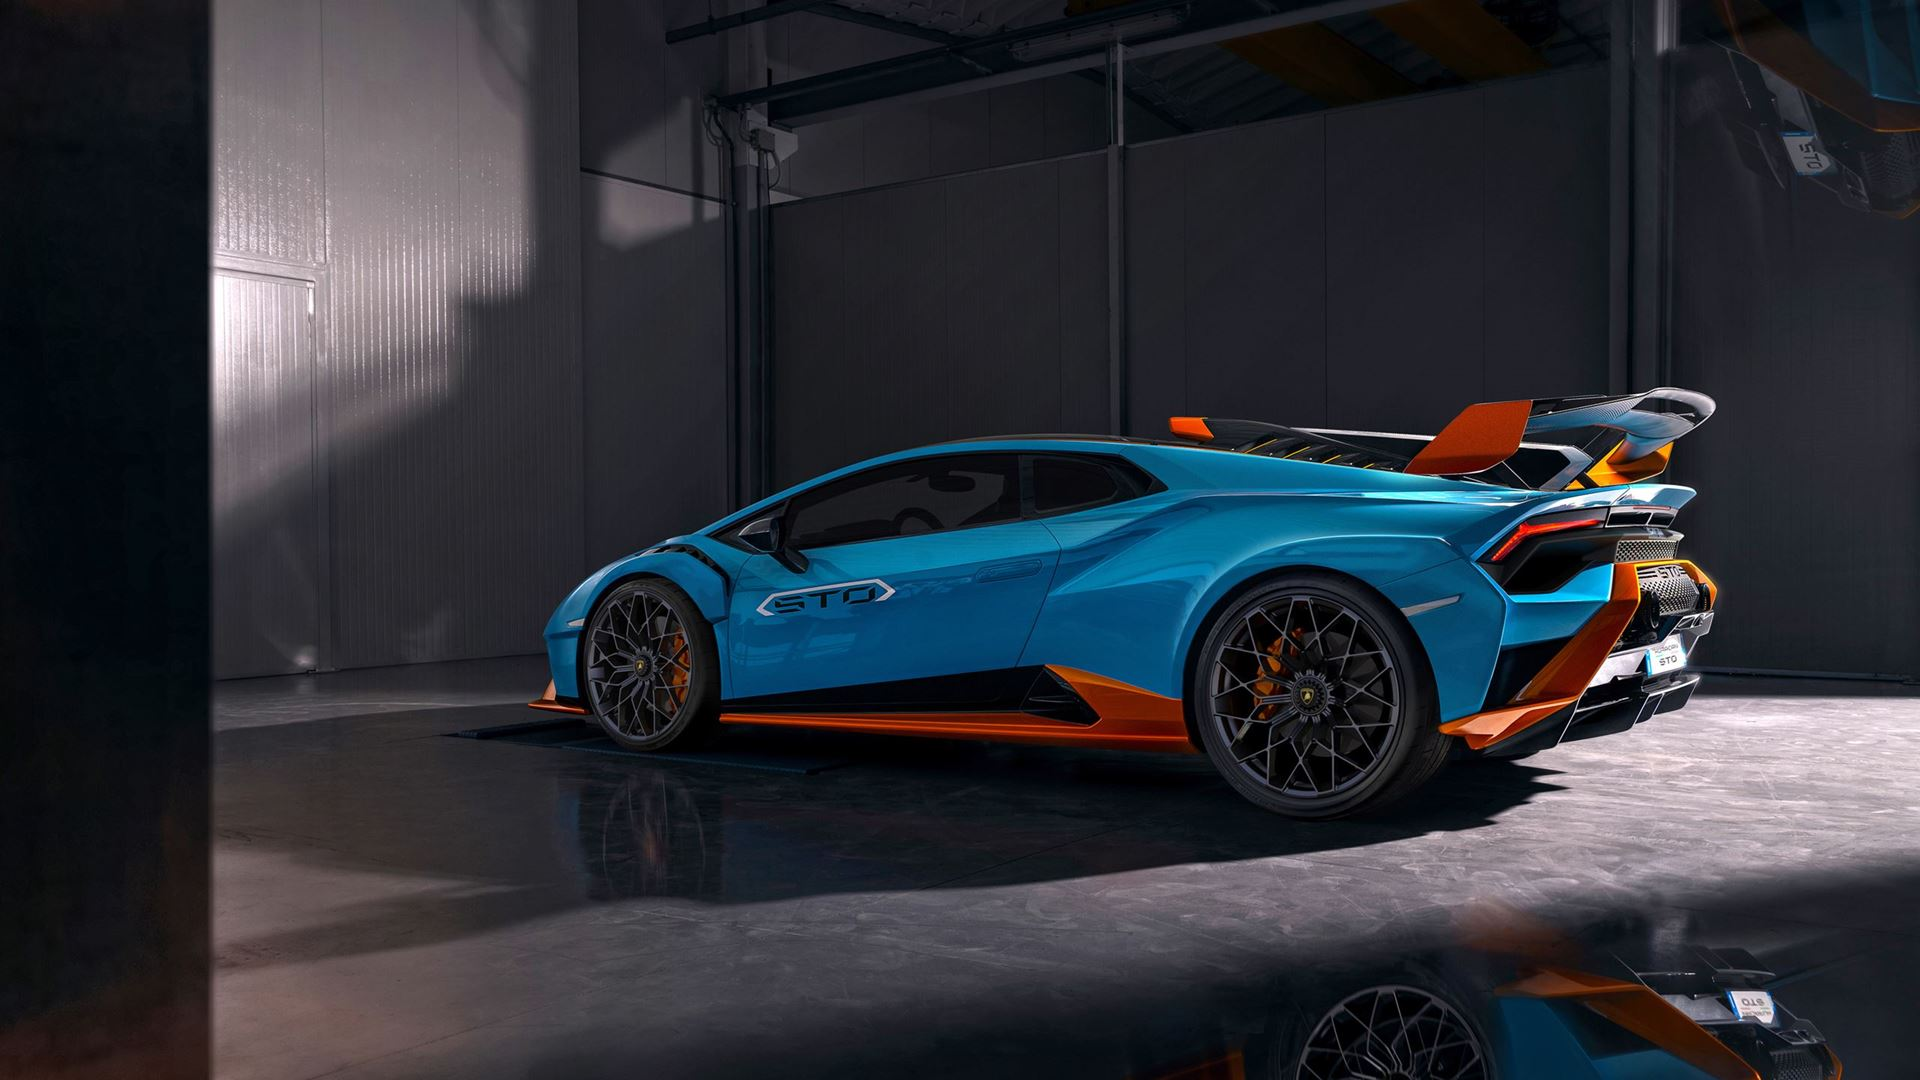 Racetrack to road: the new Lamborghini Huracán STO - Image 1